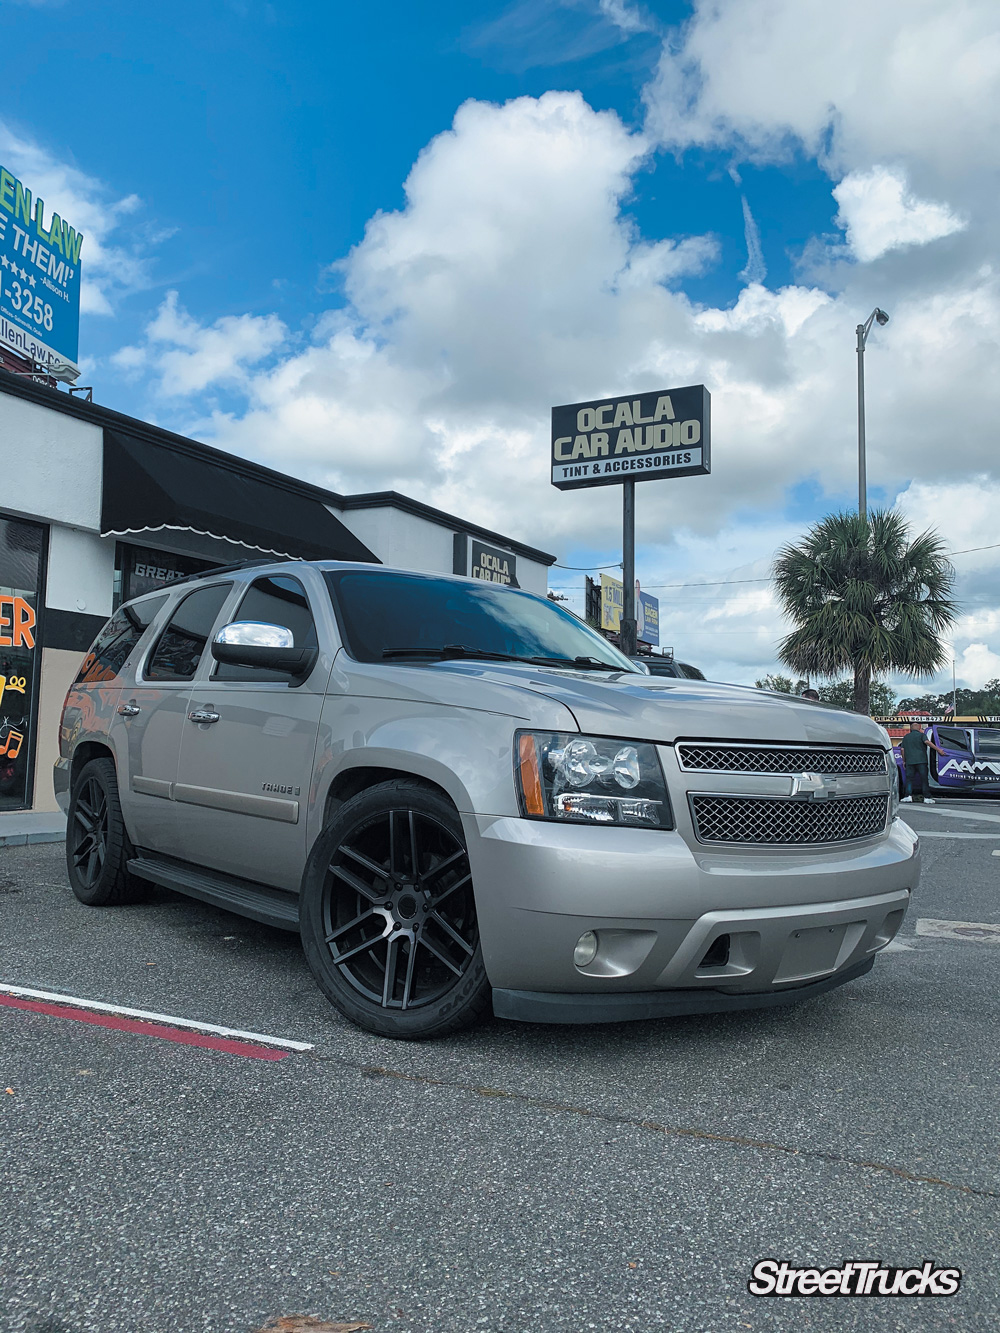 Tan Chevy Tahoe lowered with black wheels